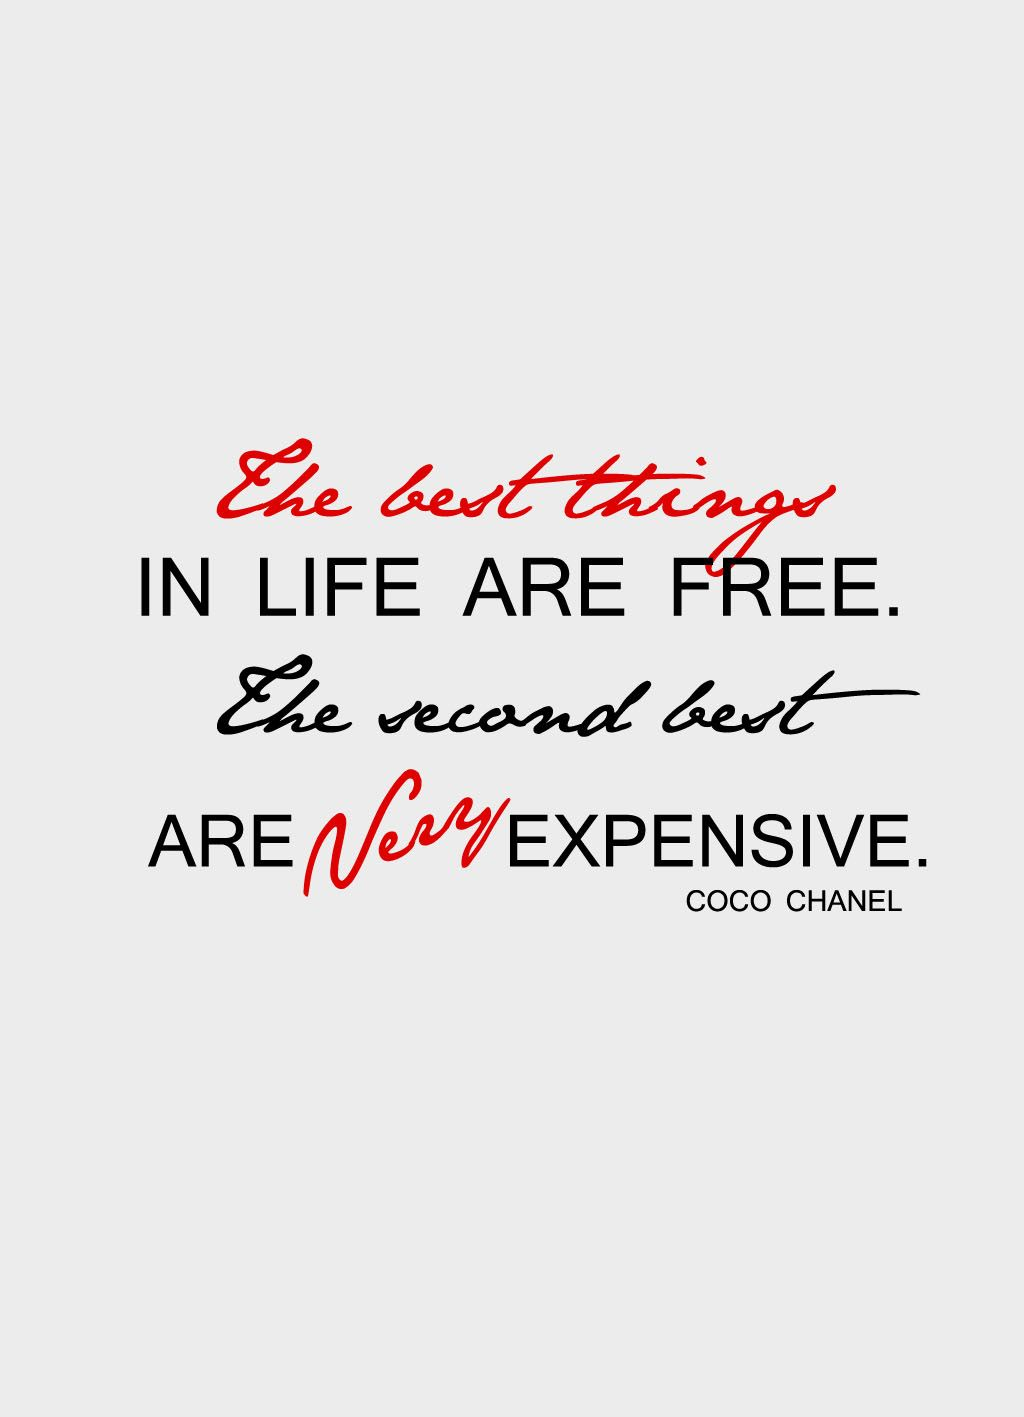 The+best+things+in+life+are+free+the+second+best+are+very+expensive.jpg (1024×1417)